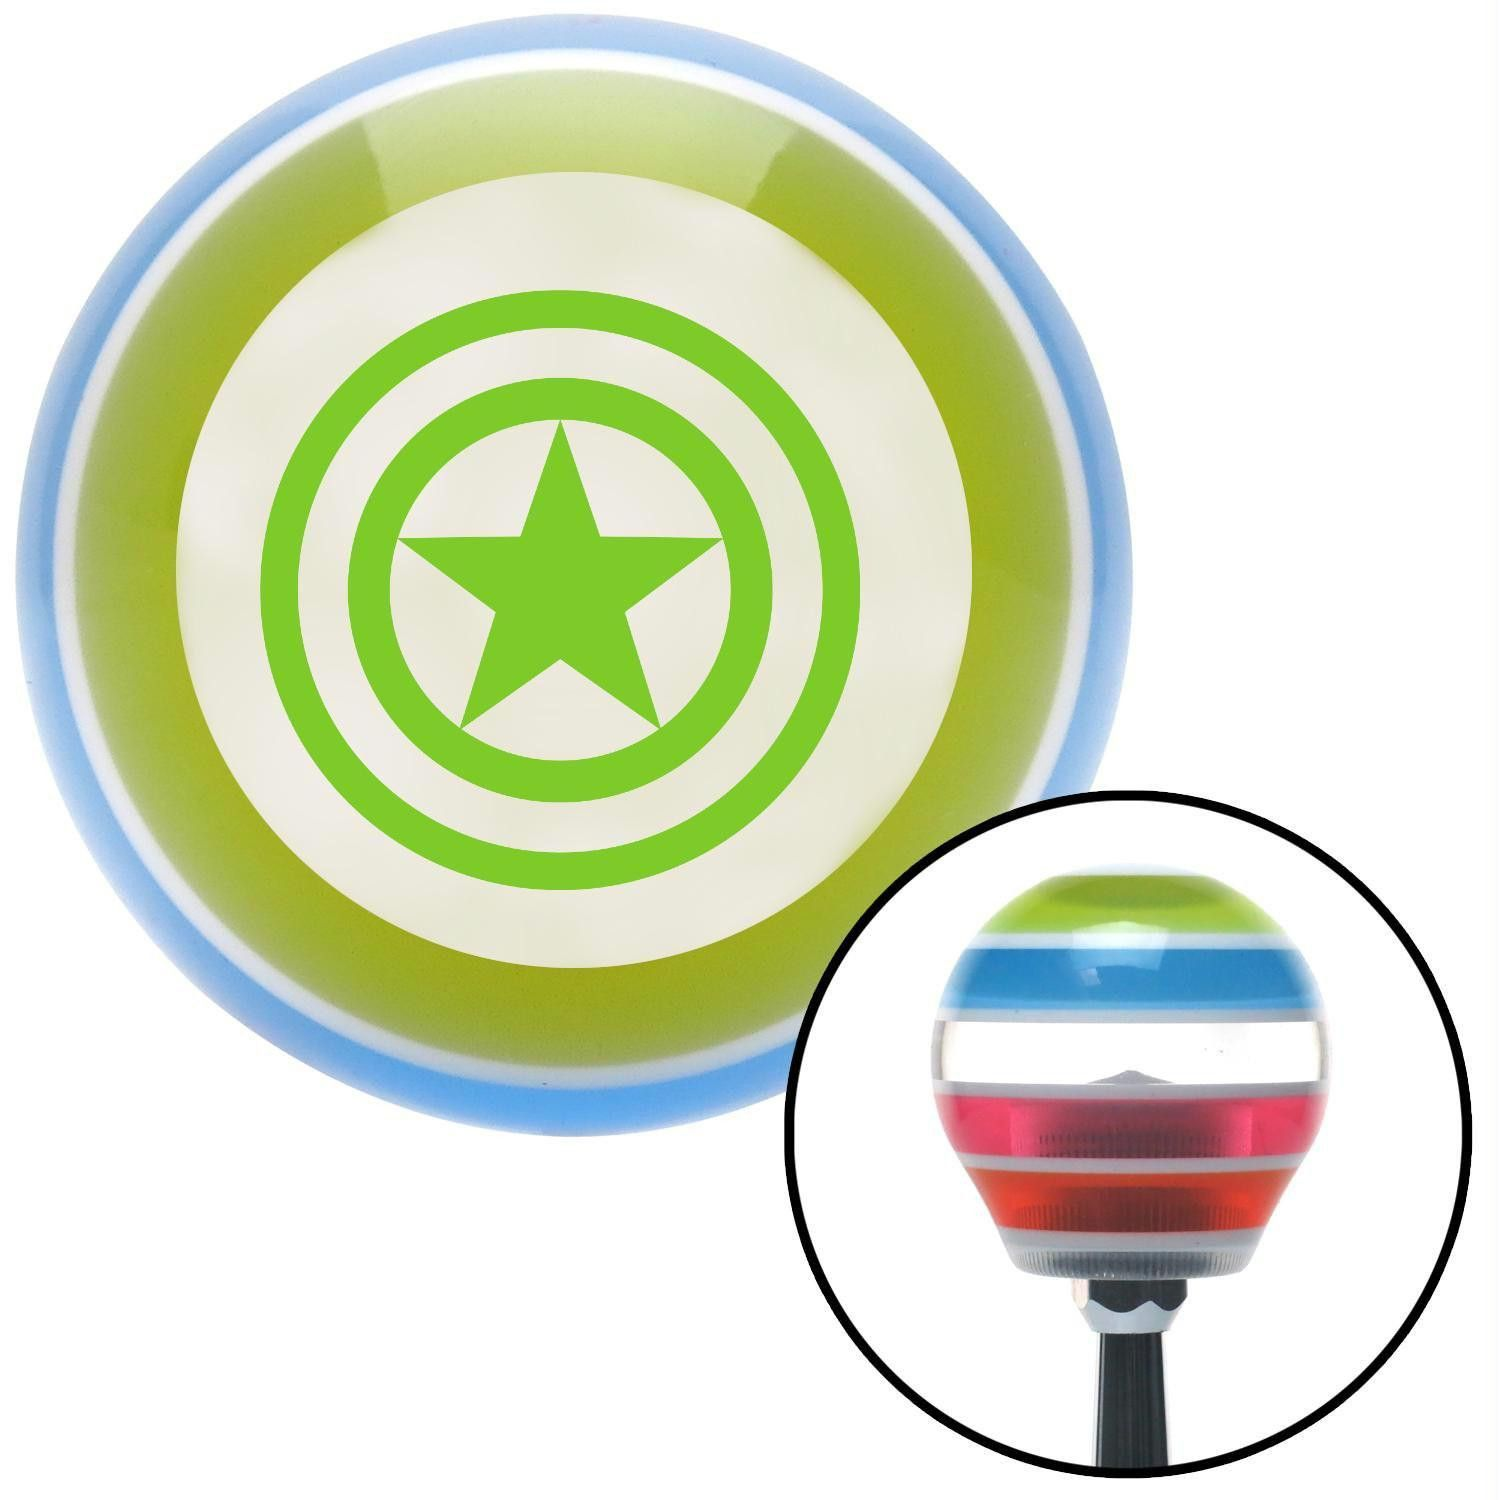 Green Outlined Star Stripe Shift Knob with M16 x 15 Insert